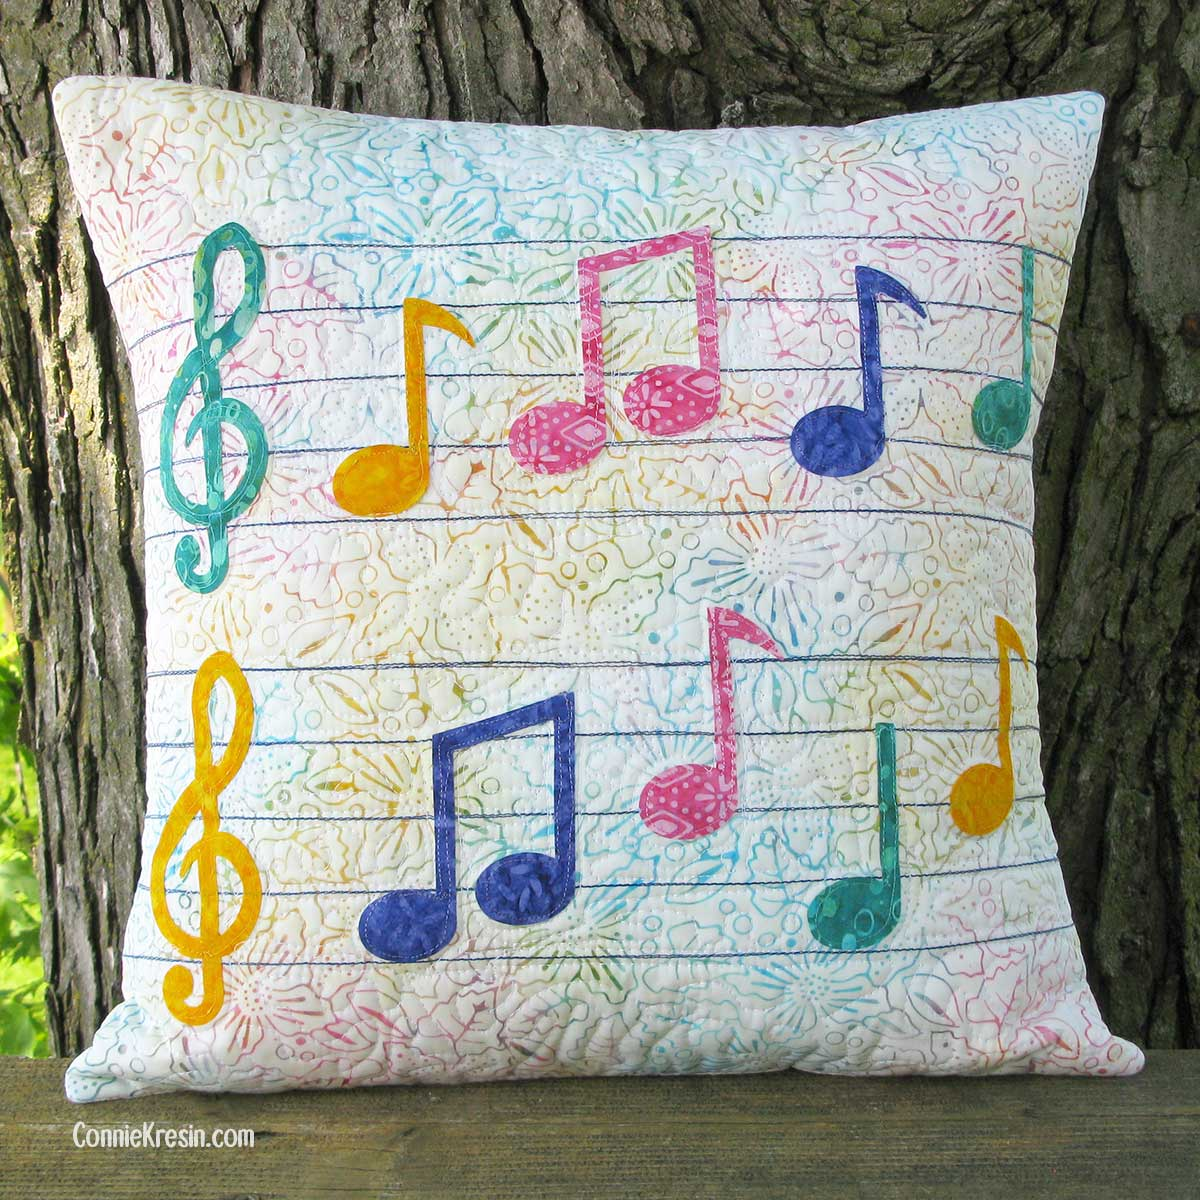 Applique Musical Pillow on deck rail